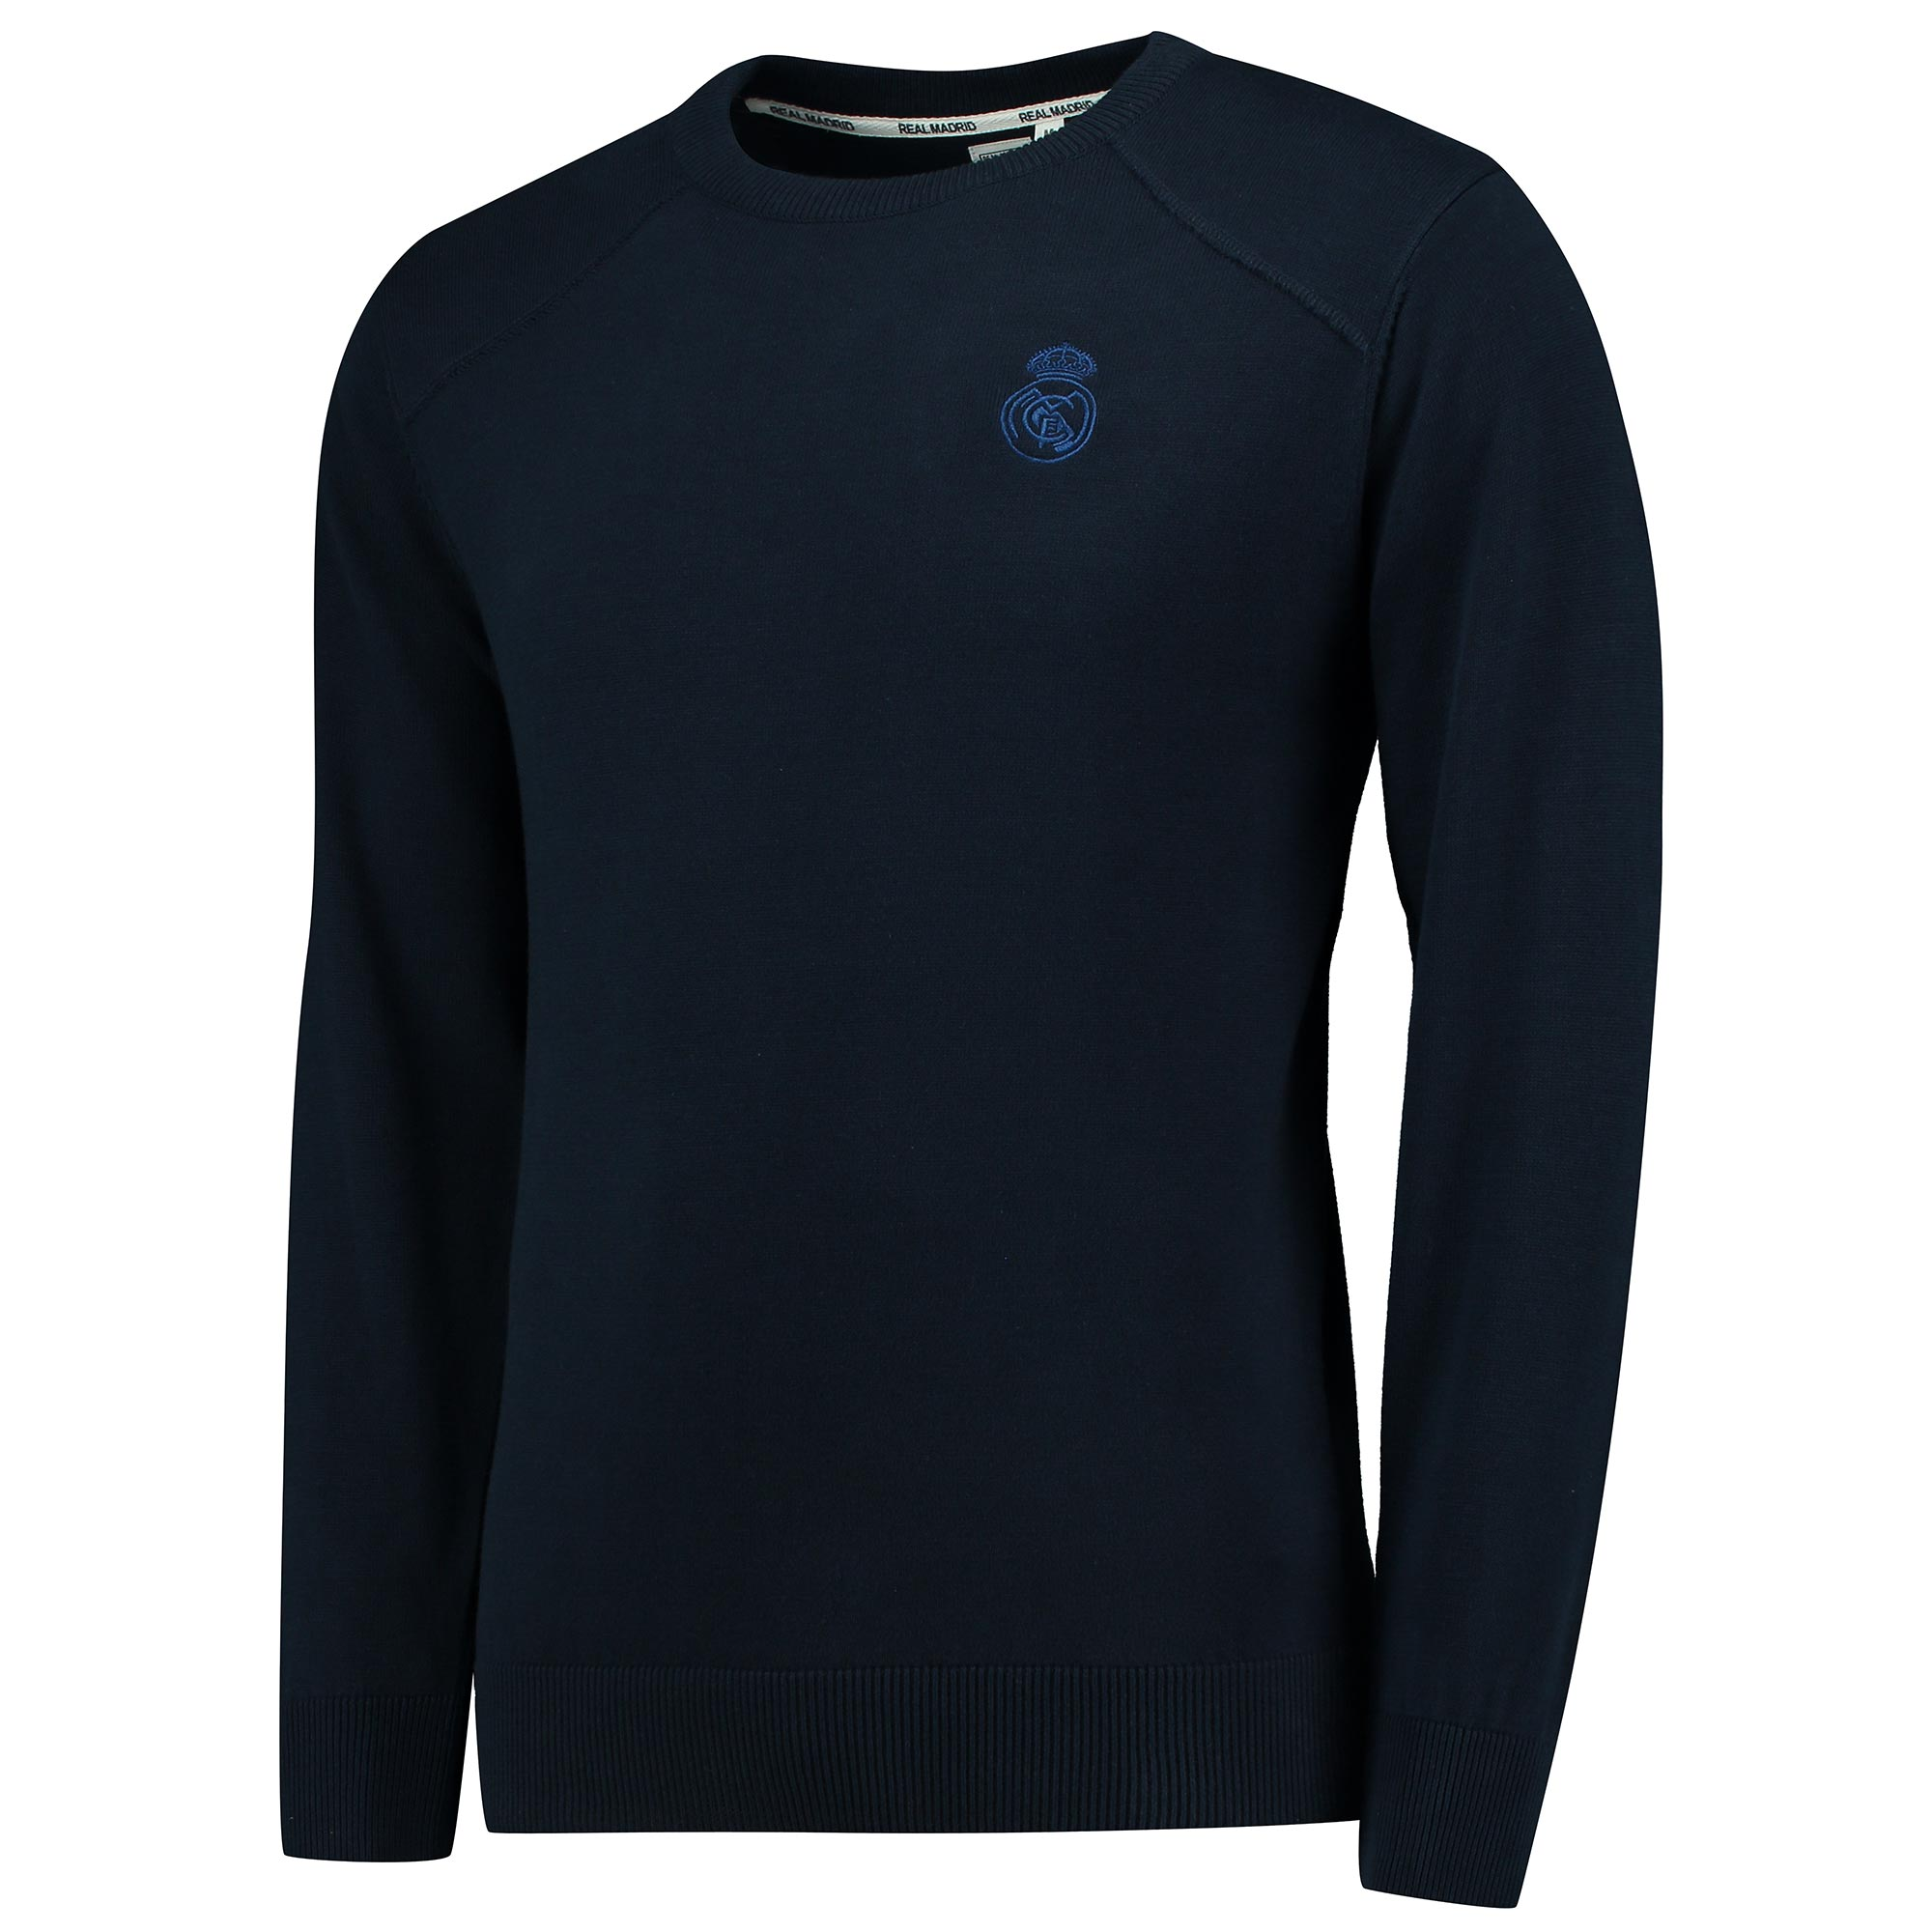 Image of Real Madrid Crew Neck Sweater - Navy - Mens